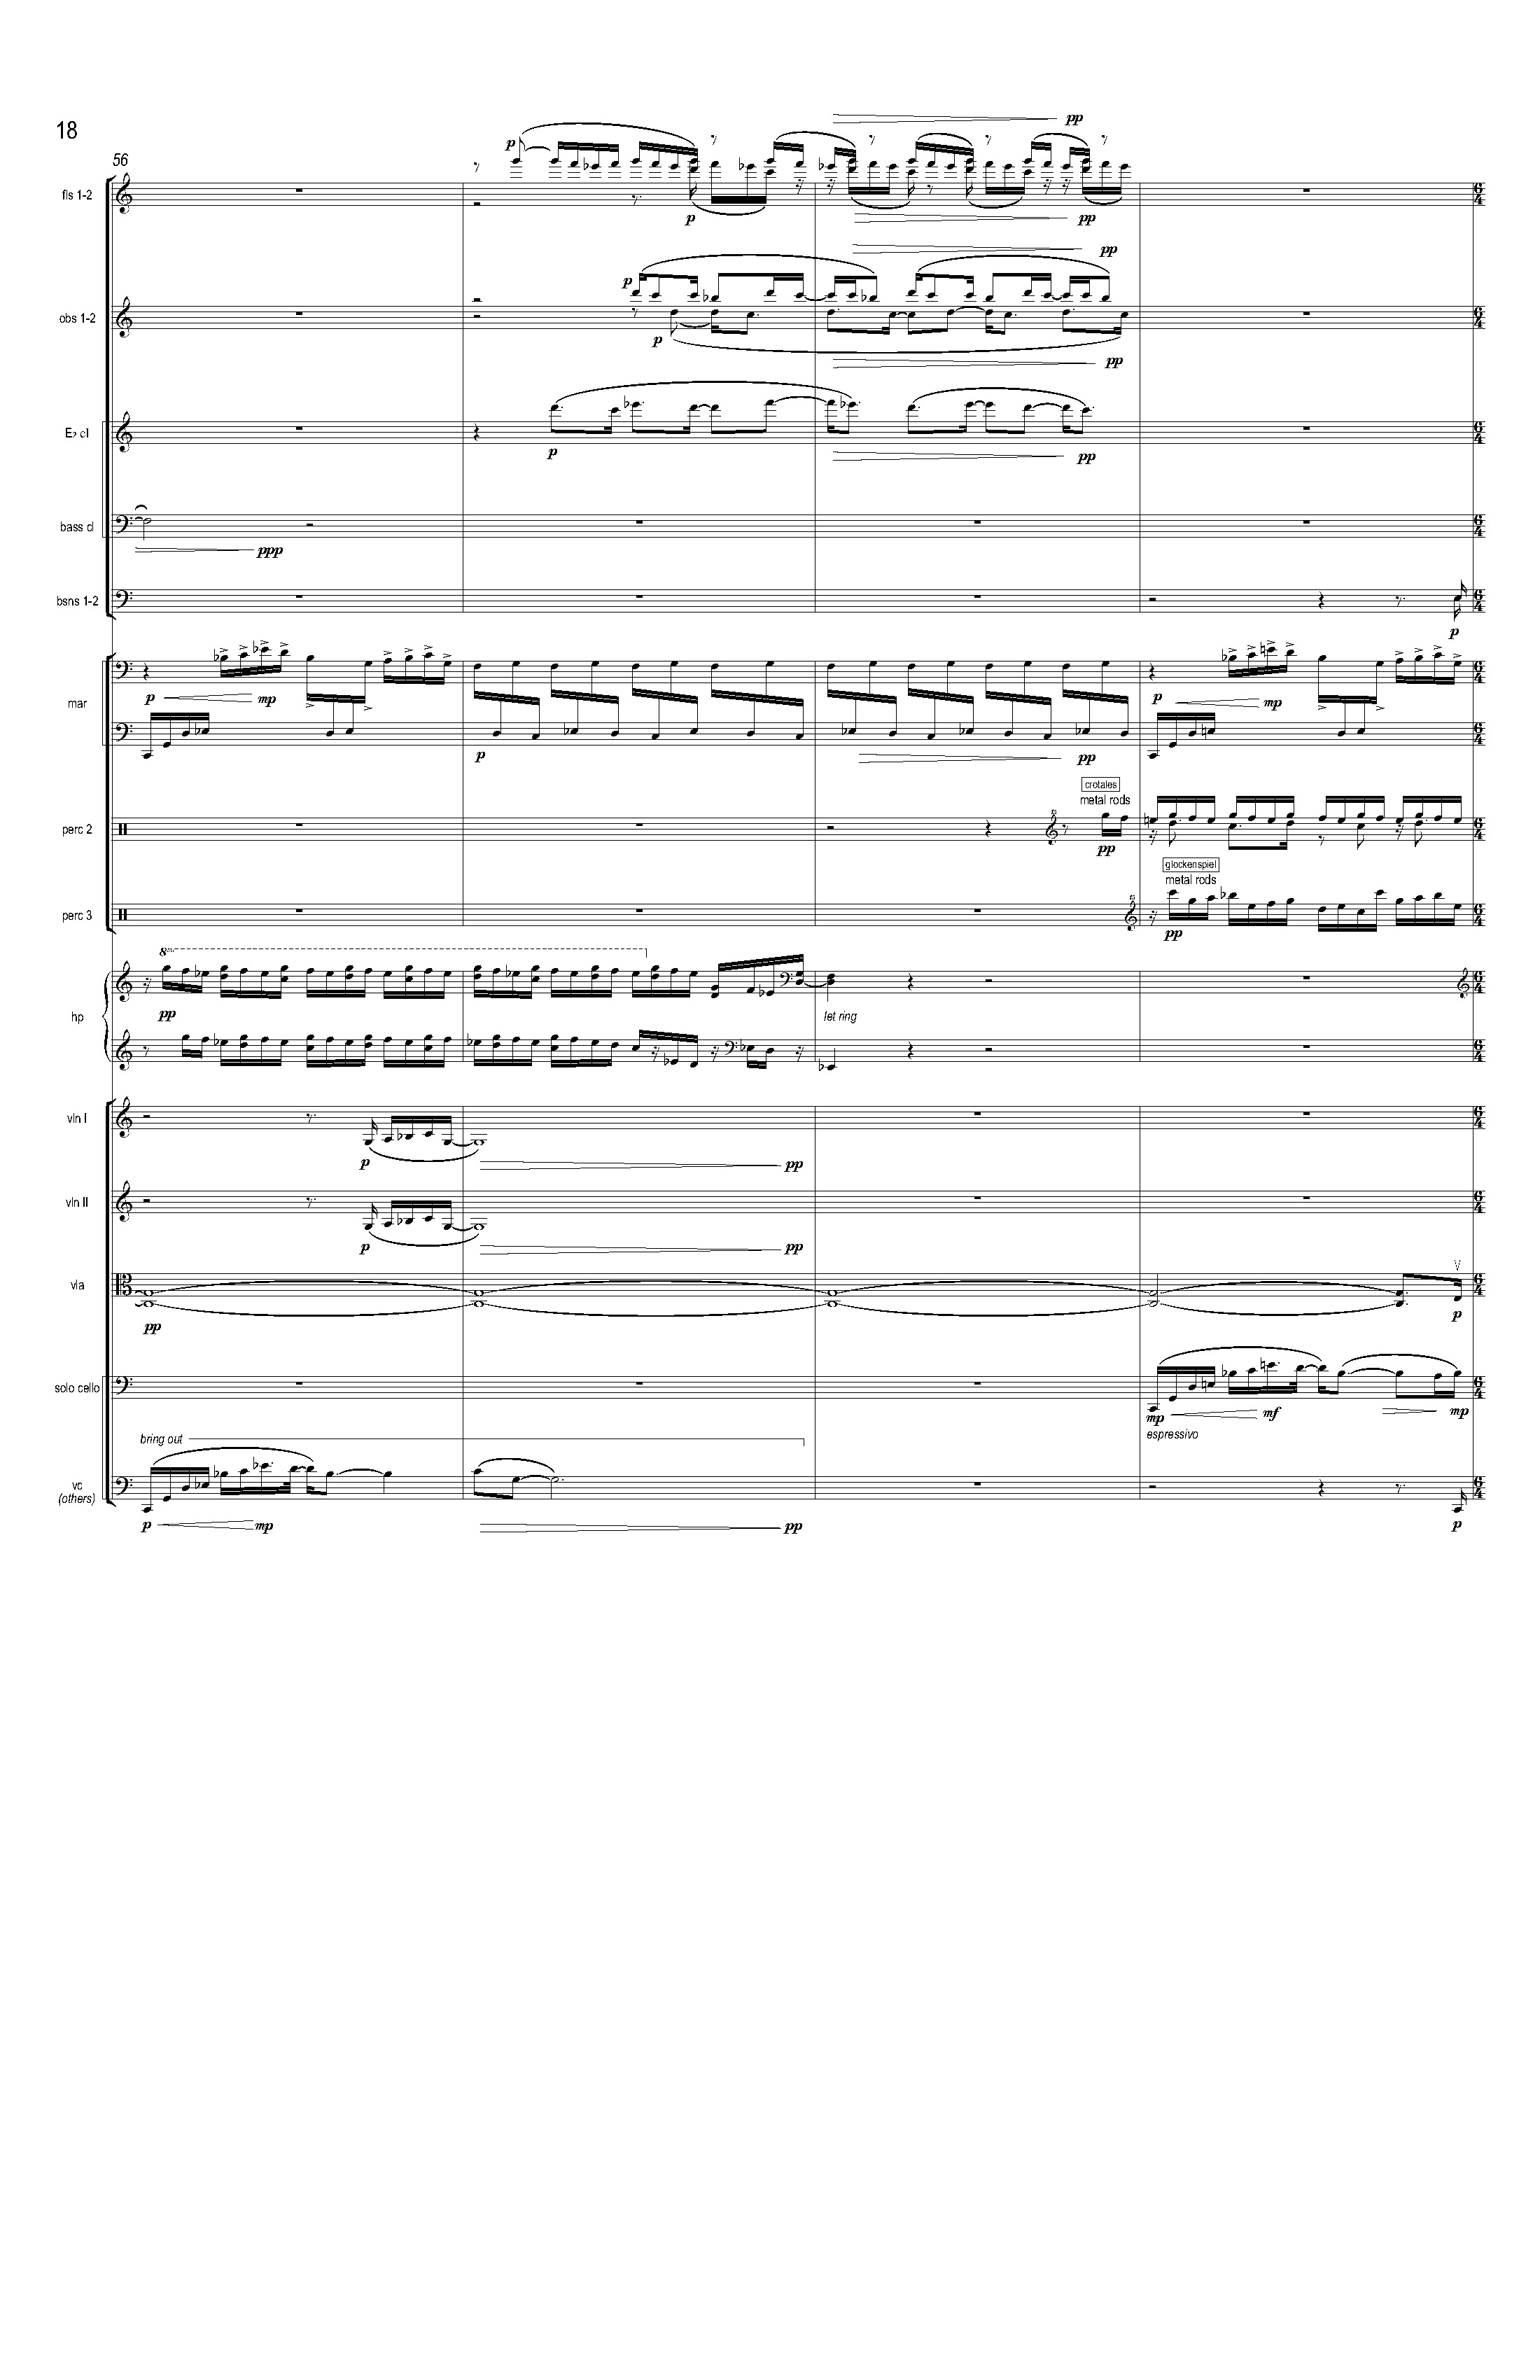 Ciach_Collective Uncommon REVISED_Full Score (Feb 2017)_Seite_24.jpg